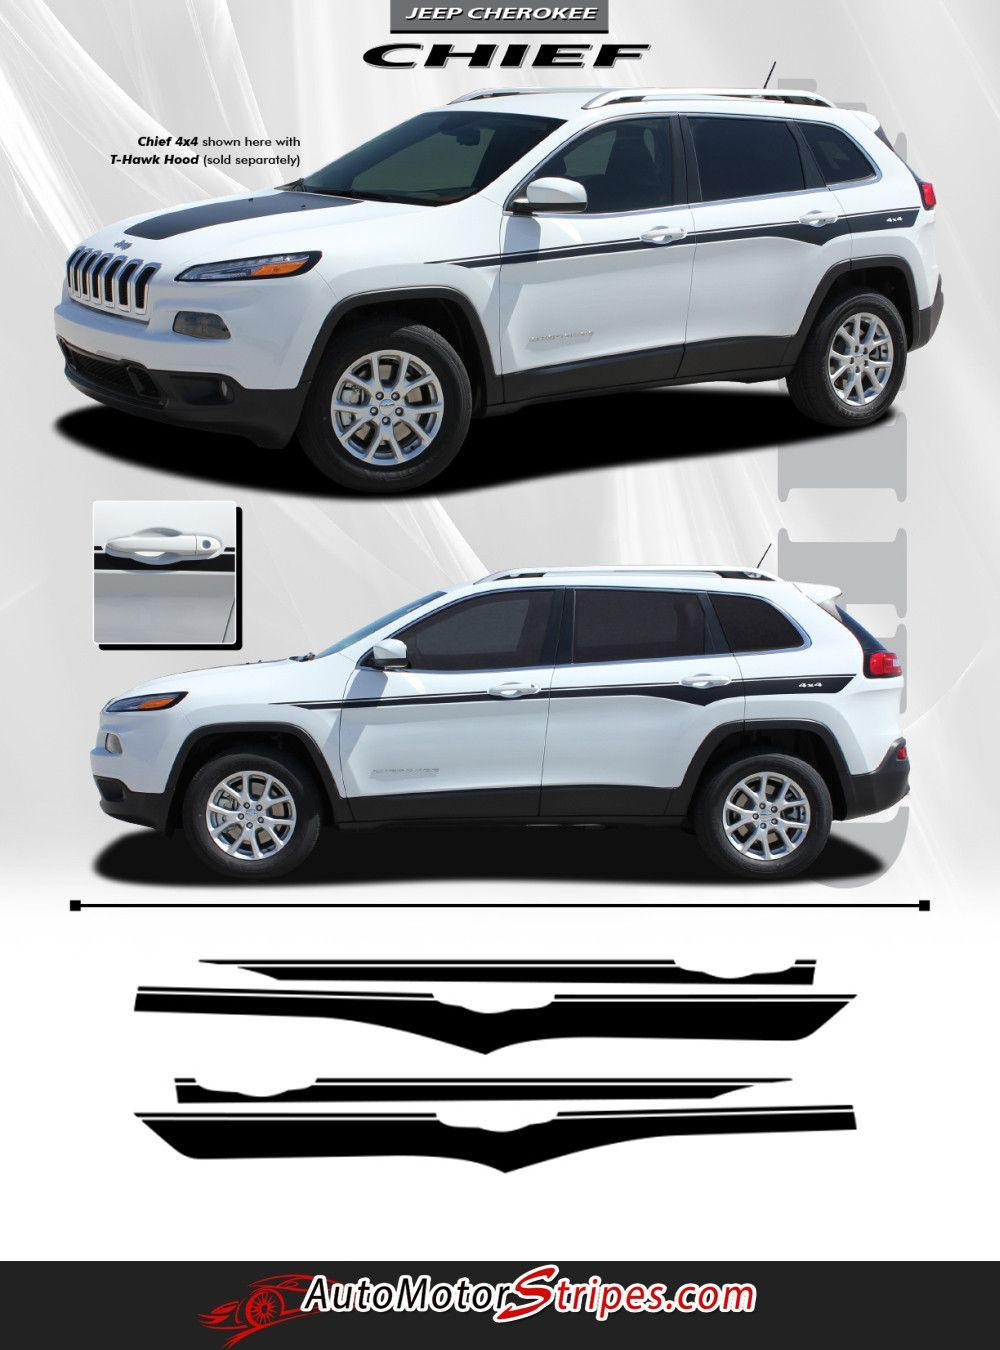 2014 2016 Jeep Cherokee Chief Mid Body Line Accent Vinyl Decal